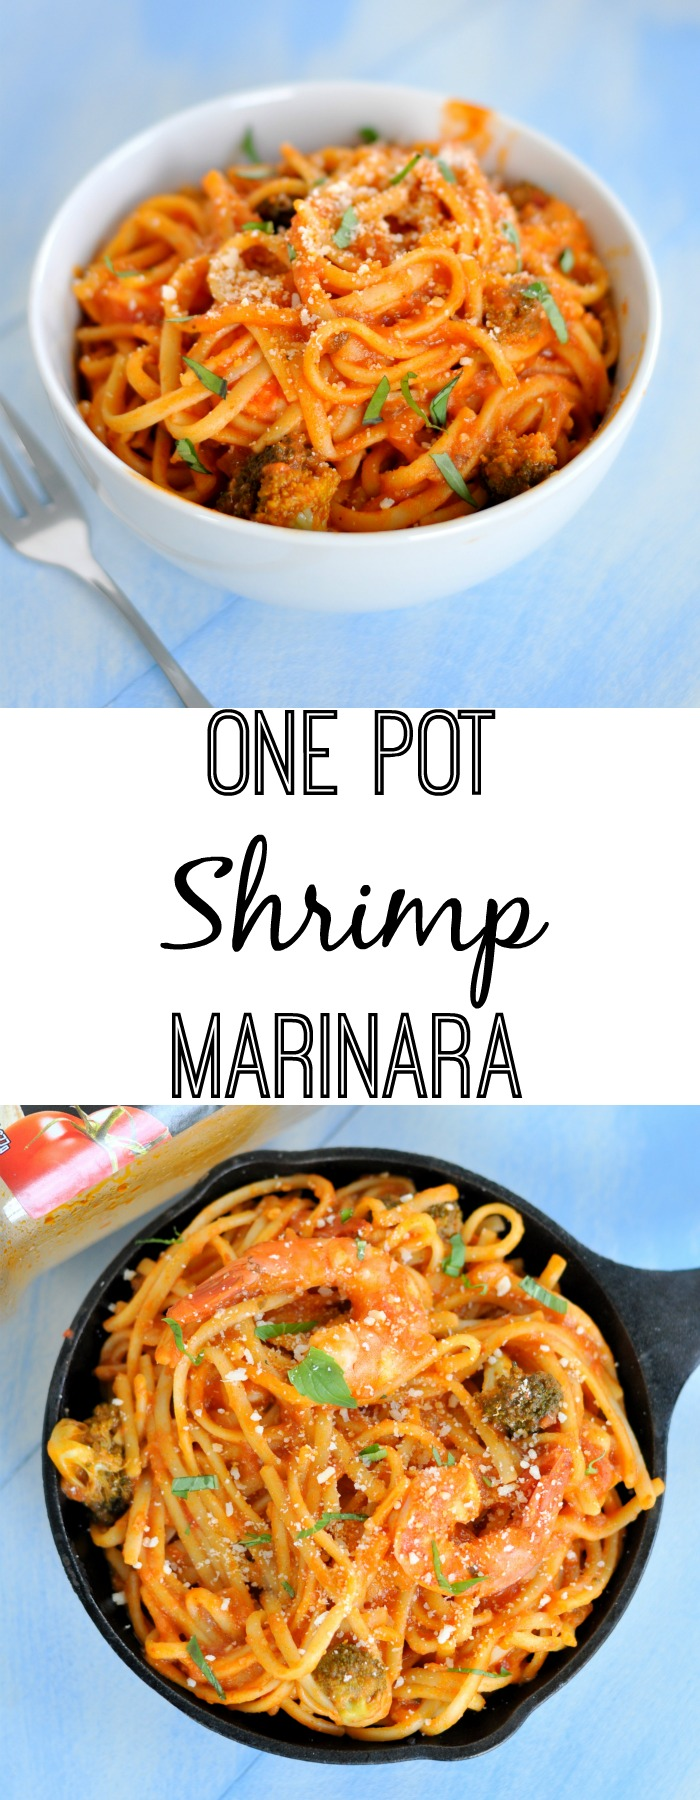 This one pot shrimp marinara will turn weeknight dinners into something worth sitting at the table a little longer for.